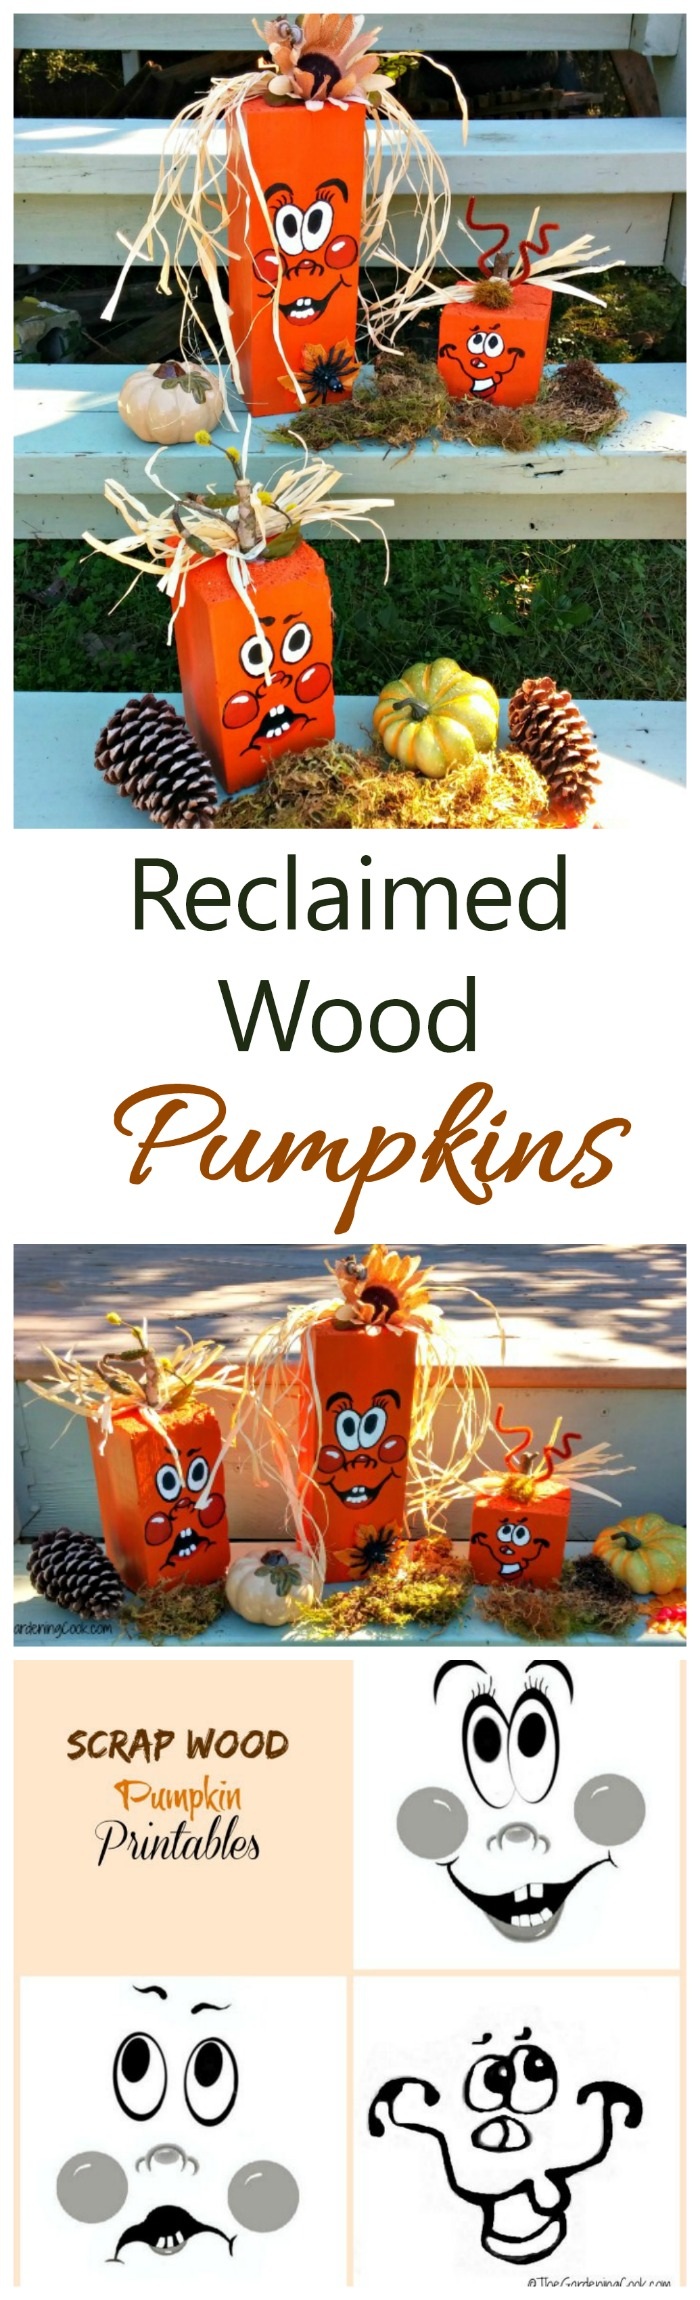 These reclaimed wood pumpkins started out as an old mail box post. They are easy and fun to do and add great curb appeal. #halloweendecor #fallDIY